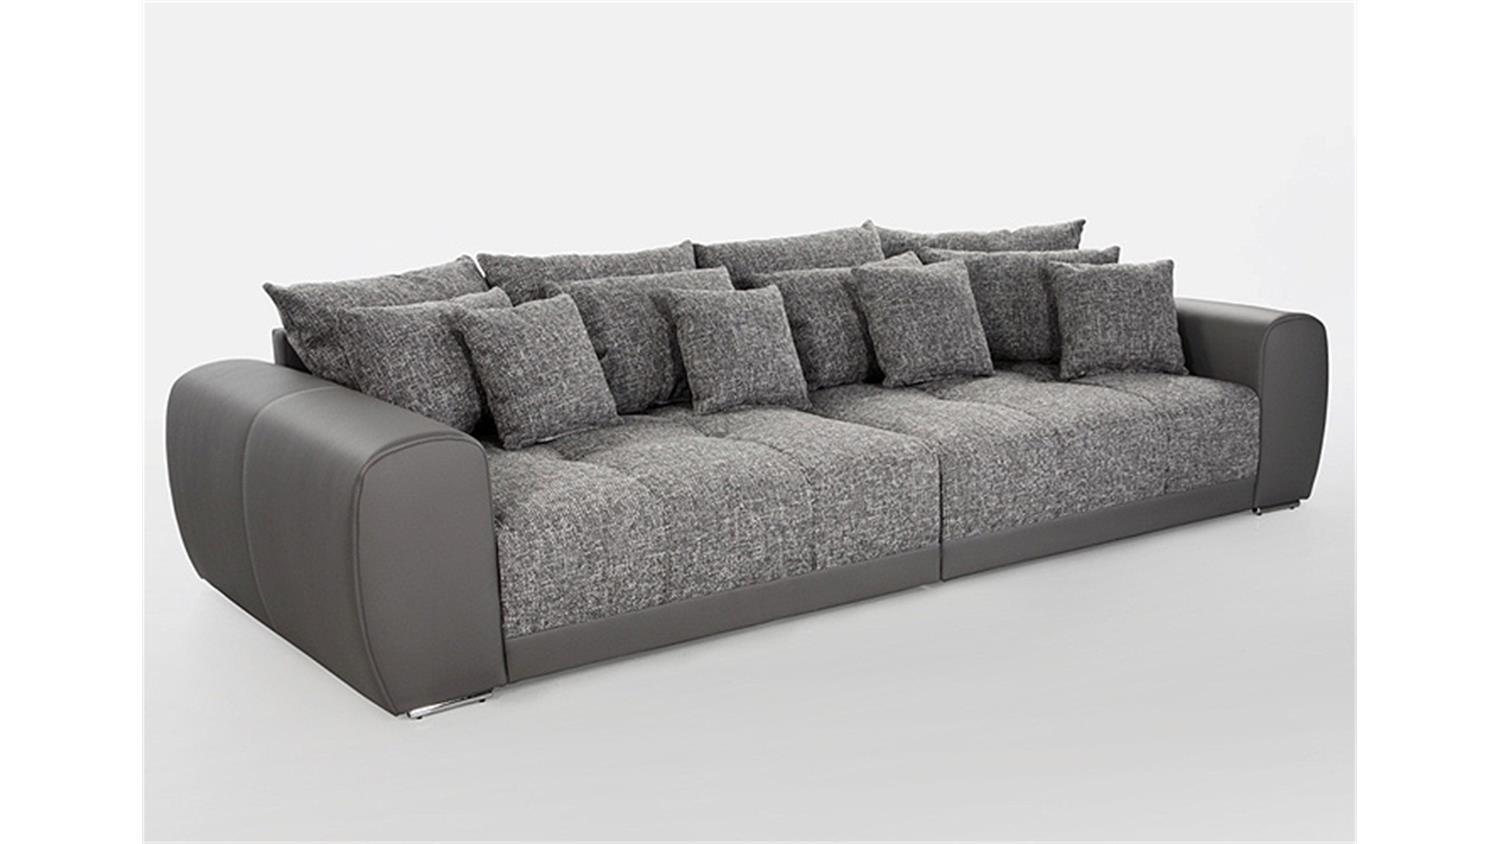 Big Sofa Möbel Xxl Big Sofa Sam Polstermöbel Xxl Sofa In Grau Hellgrau 310 Cm